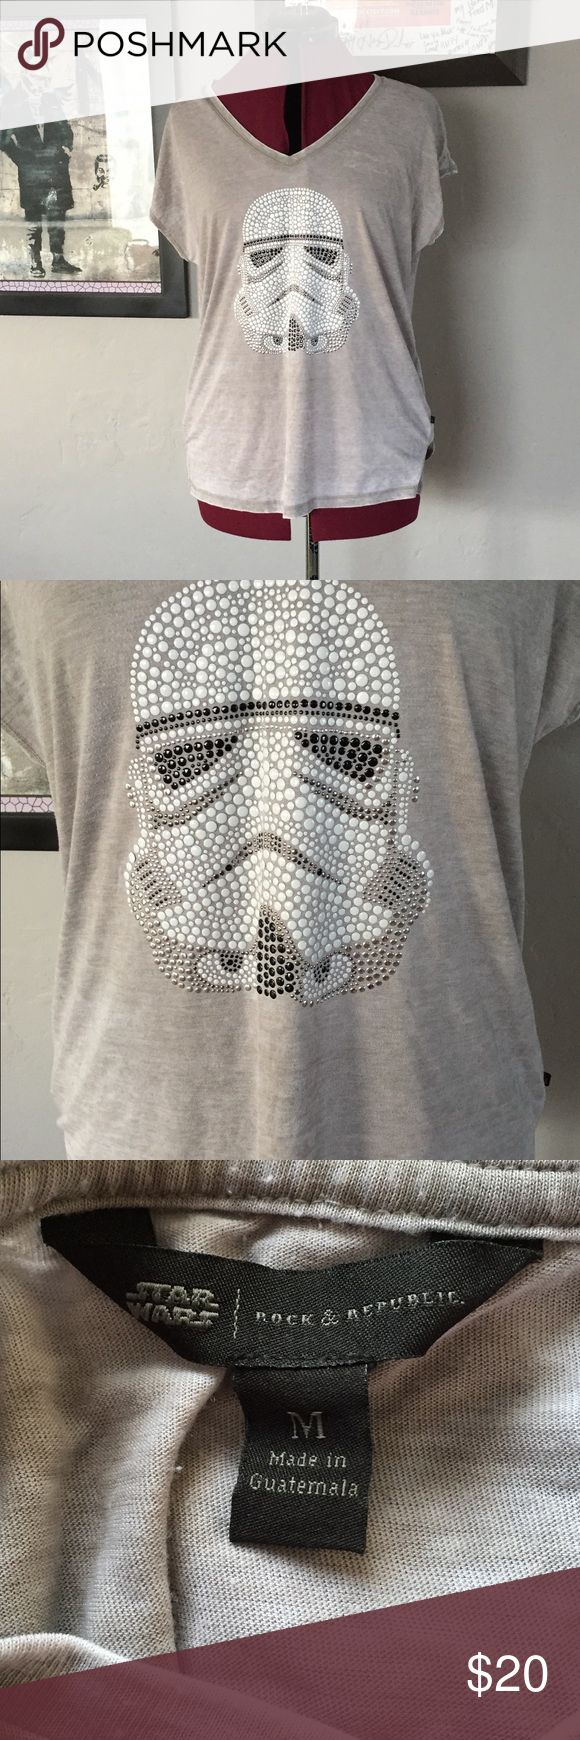 Stormtrooper t shirt Distressed lightweight tee with embellished stormtrooper on front. Runs large Rock & Republic Tops Tees - Short Sleeve